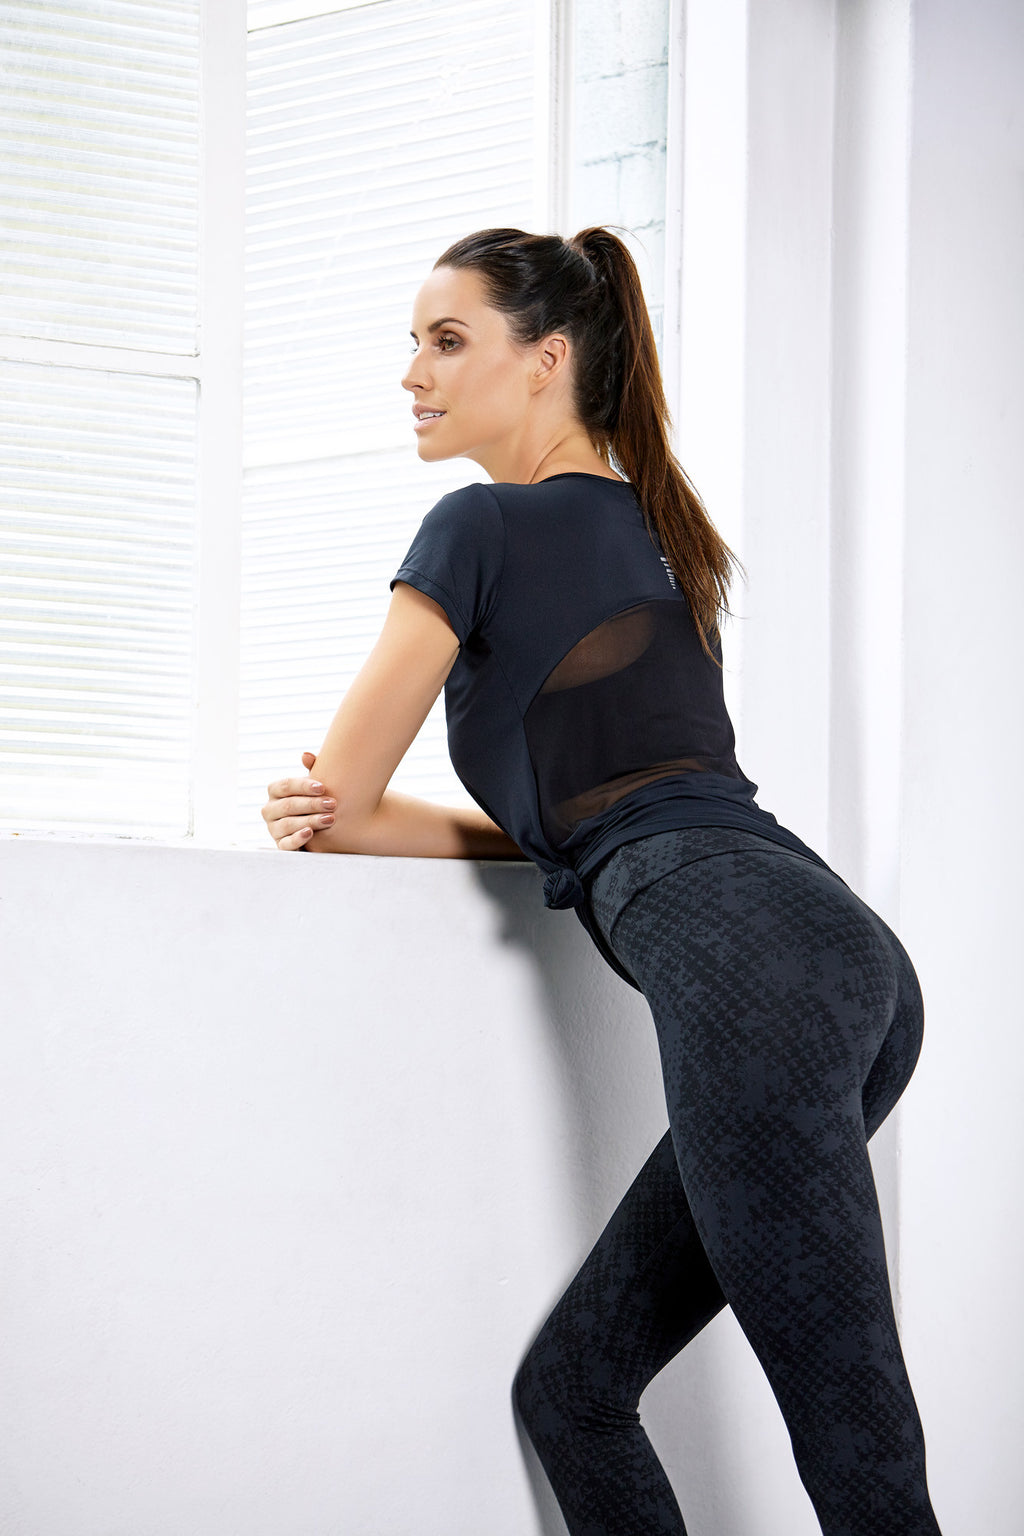 Brasilfit activewear featured promotions image for compression leggings.  Model wearing Brasilfit Saturn activewear leggings.